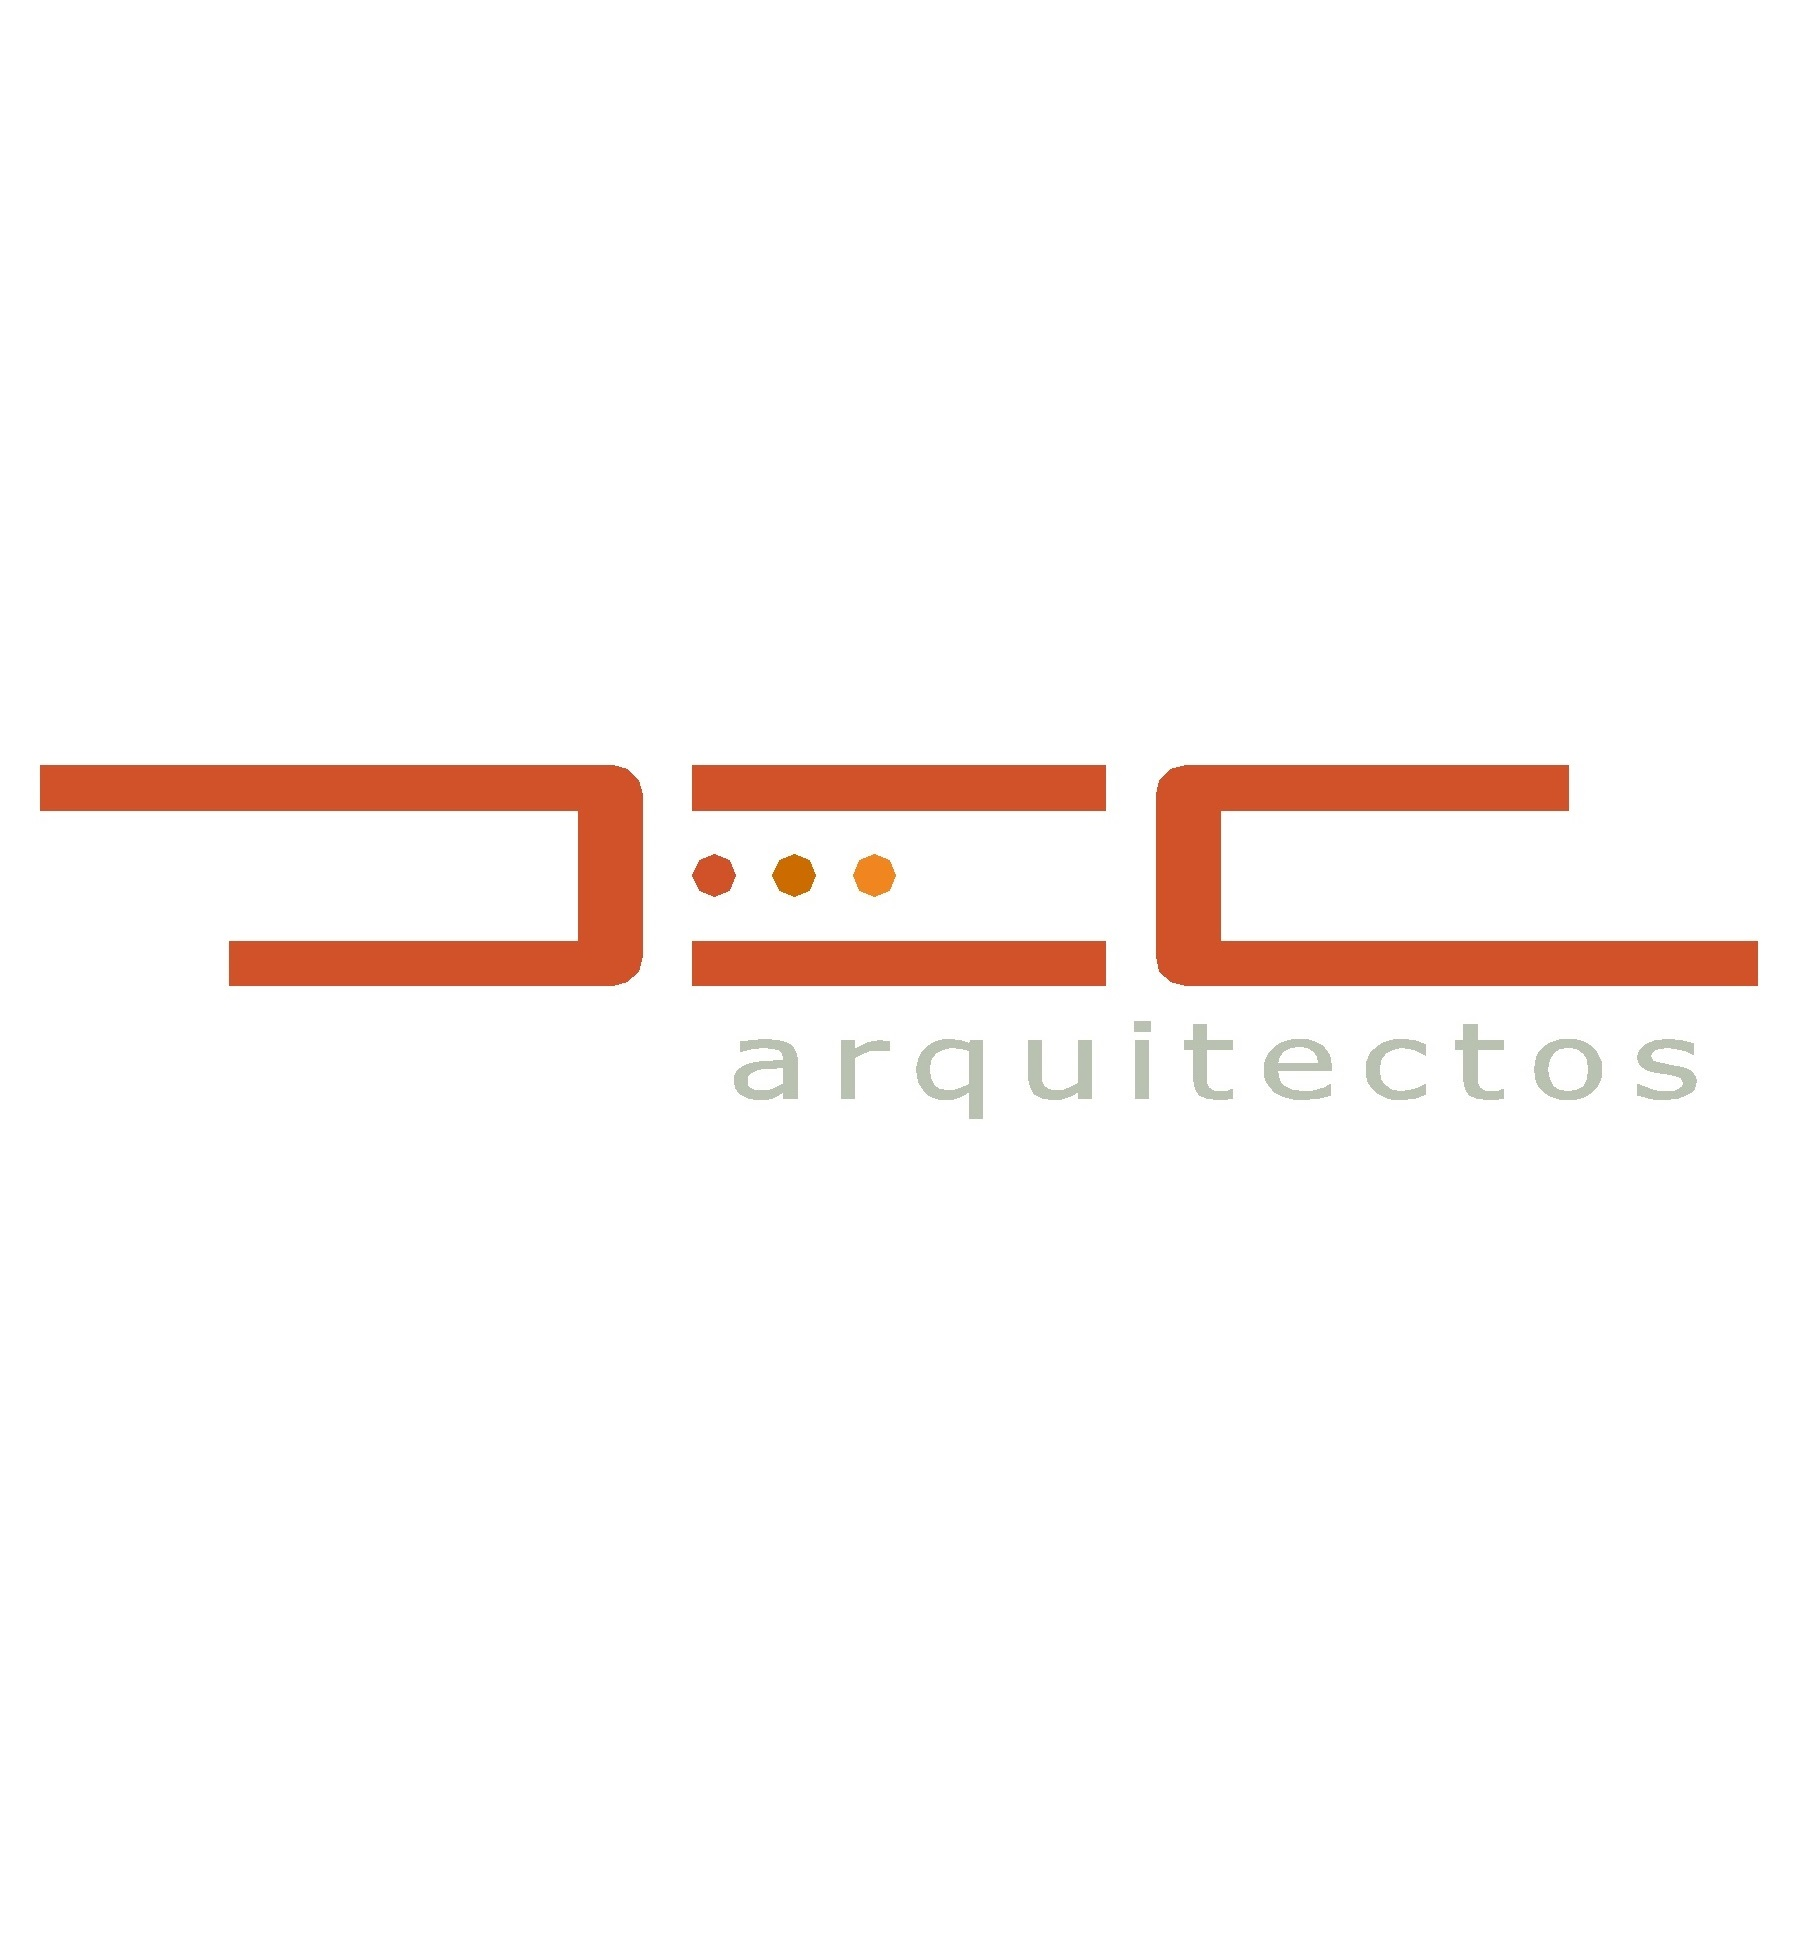 DEC Arquitectos